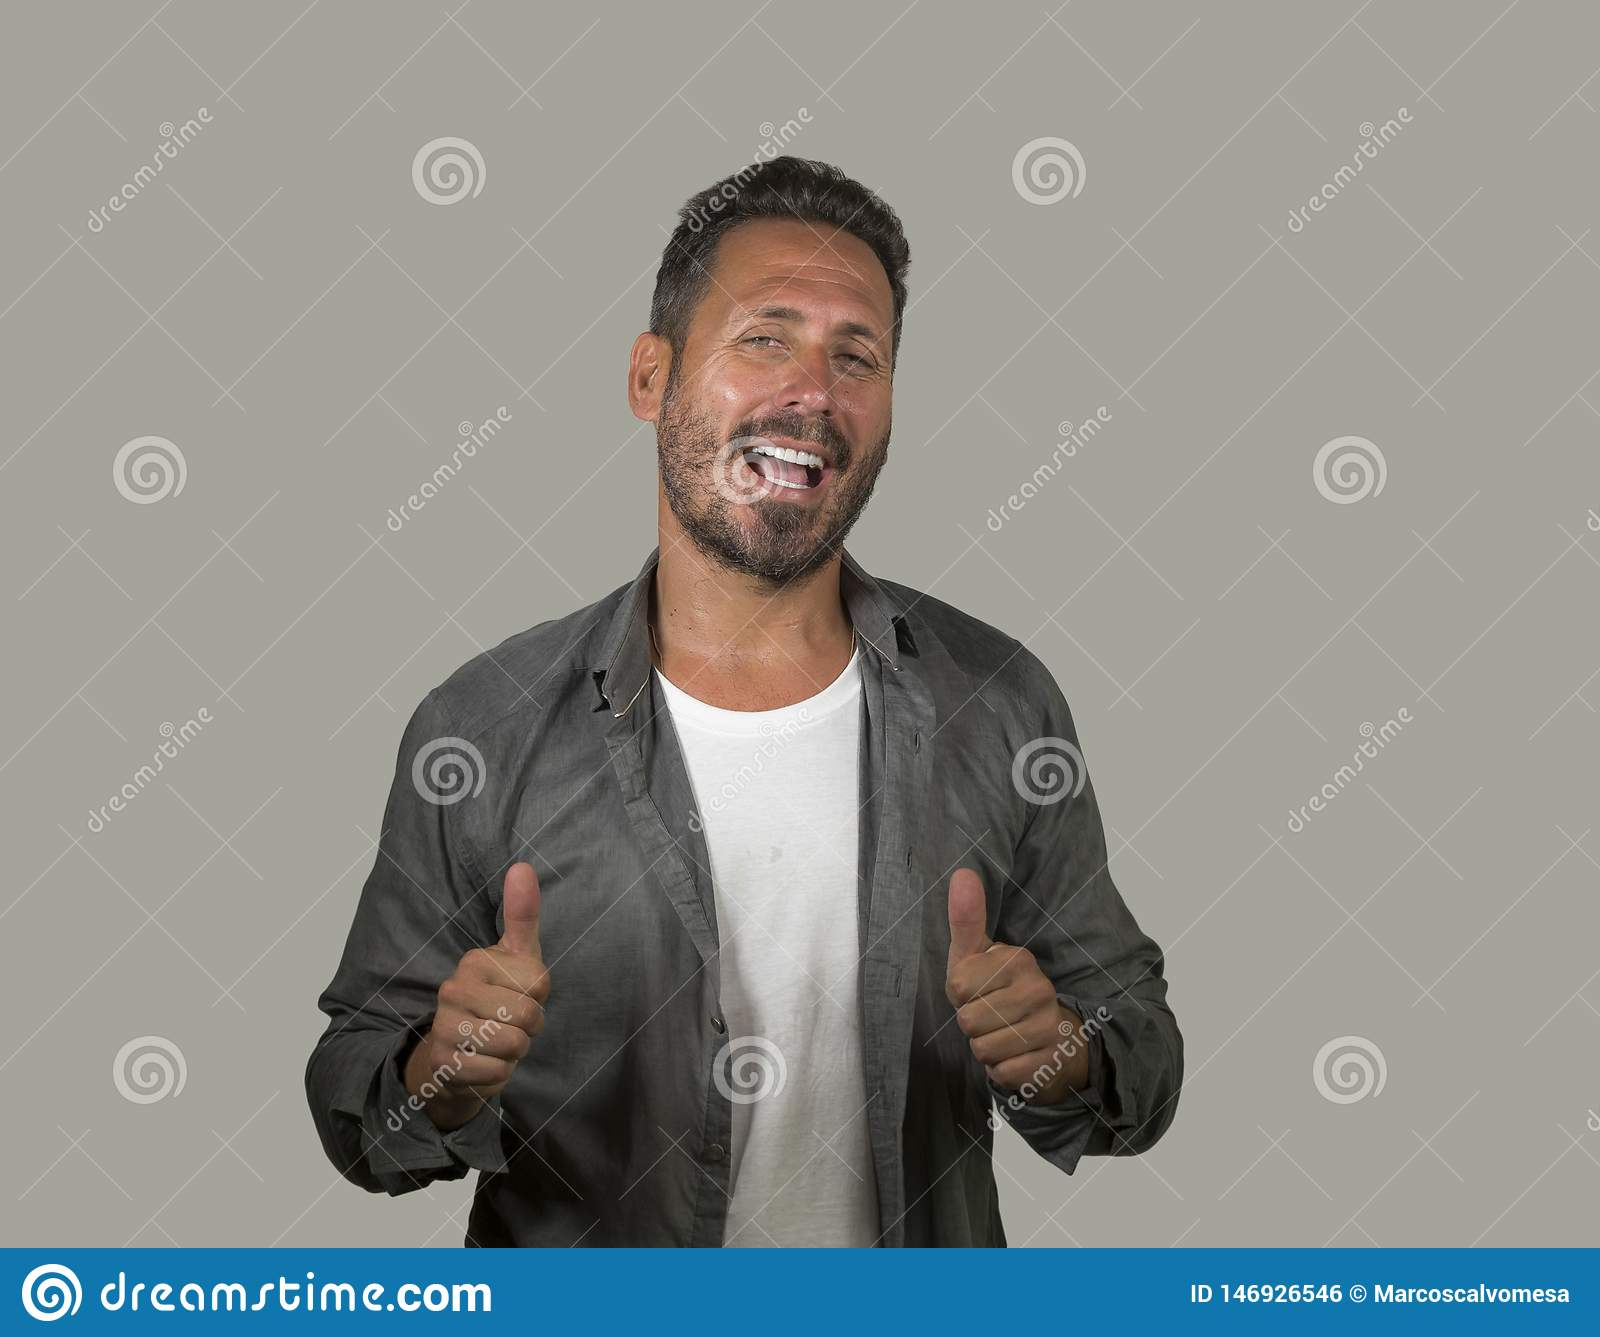 Young happy and handsome 40s man with blue eyes and beard  in casual shirt posing in cool attitude smiling cheerful and confident